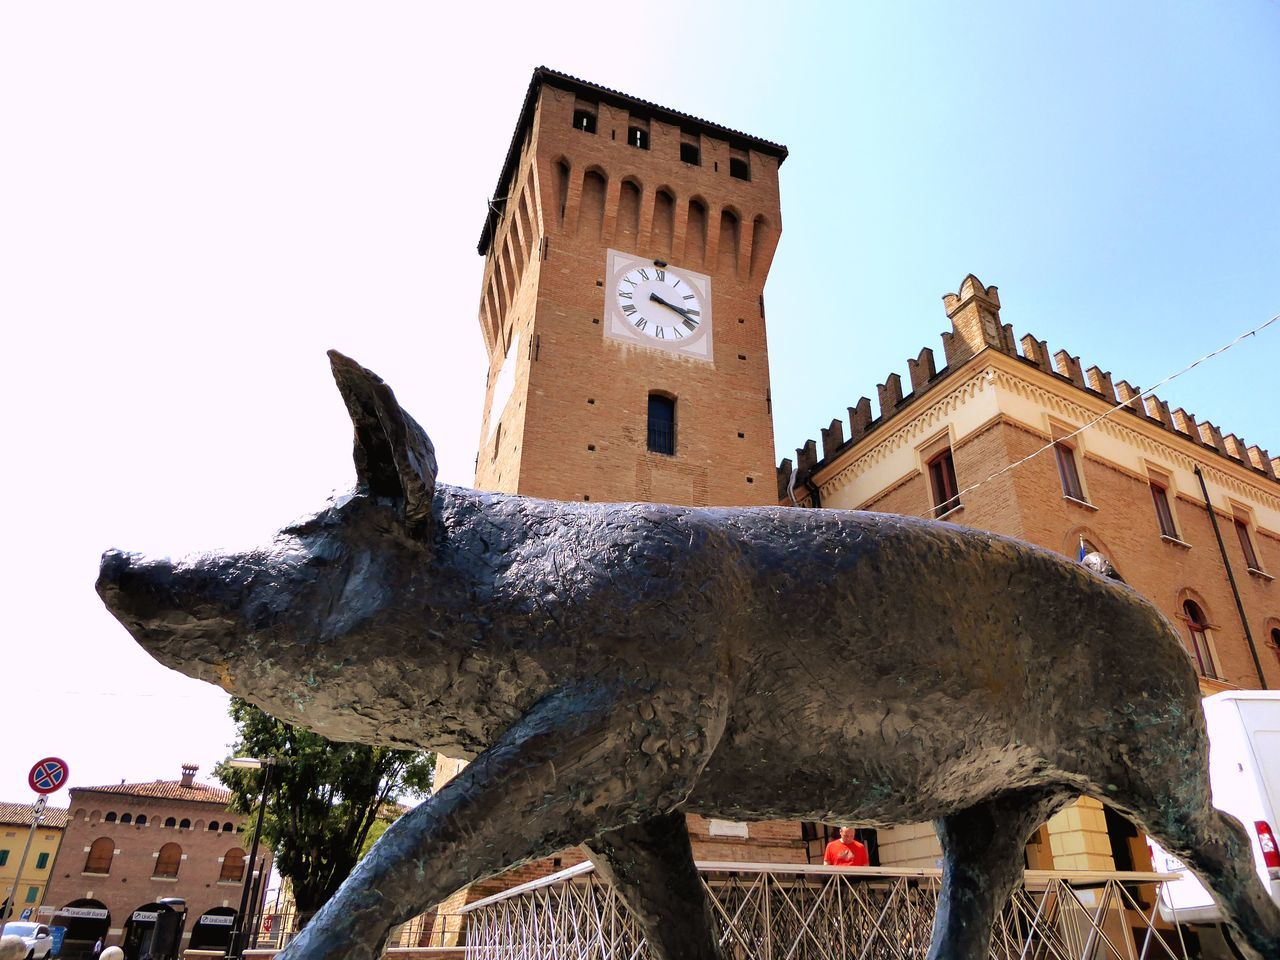 building exterior, architecture, built structure, animal representation, sculpture, statue, art and craft, low angle view, sky, history, gargoyle, outdoors, day, clock tower, no people, clear sky, animal themes